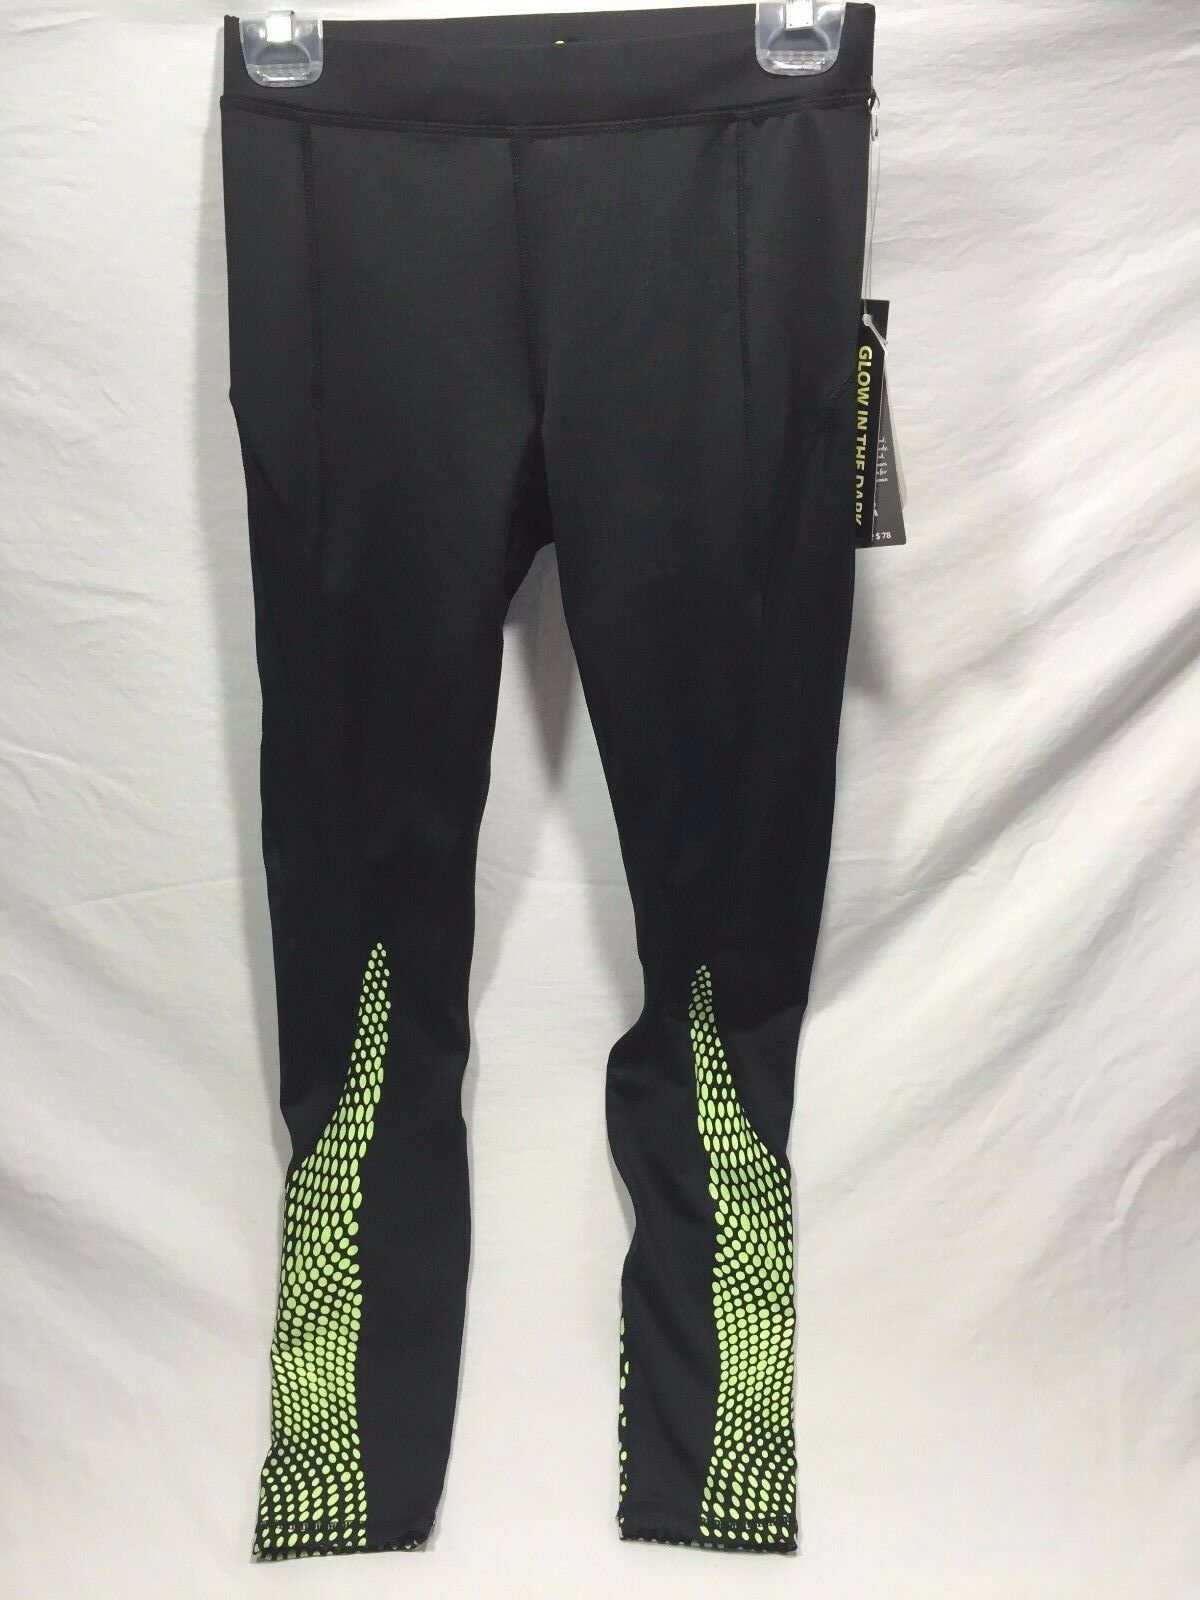 Kyodan Glow in The Dark Smtutti donna correrening pants